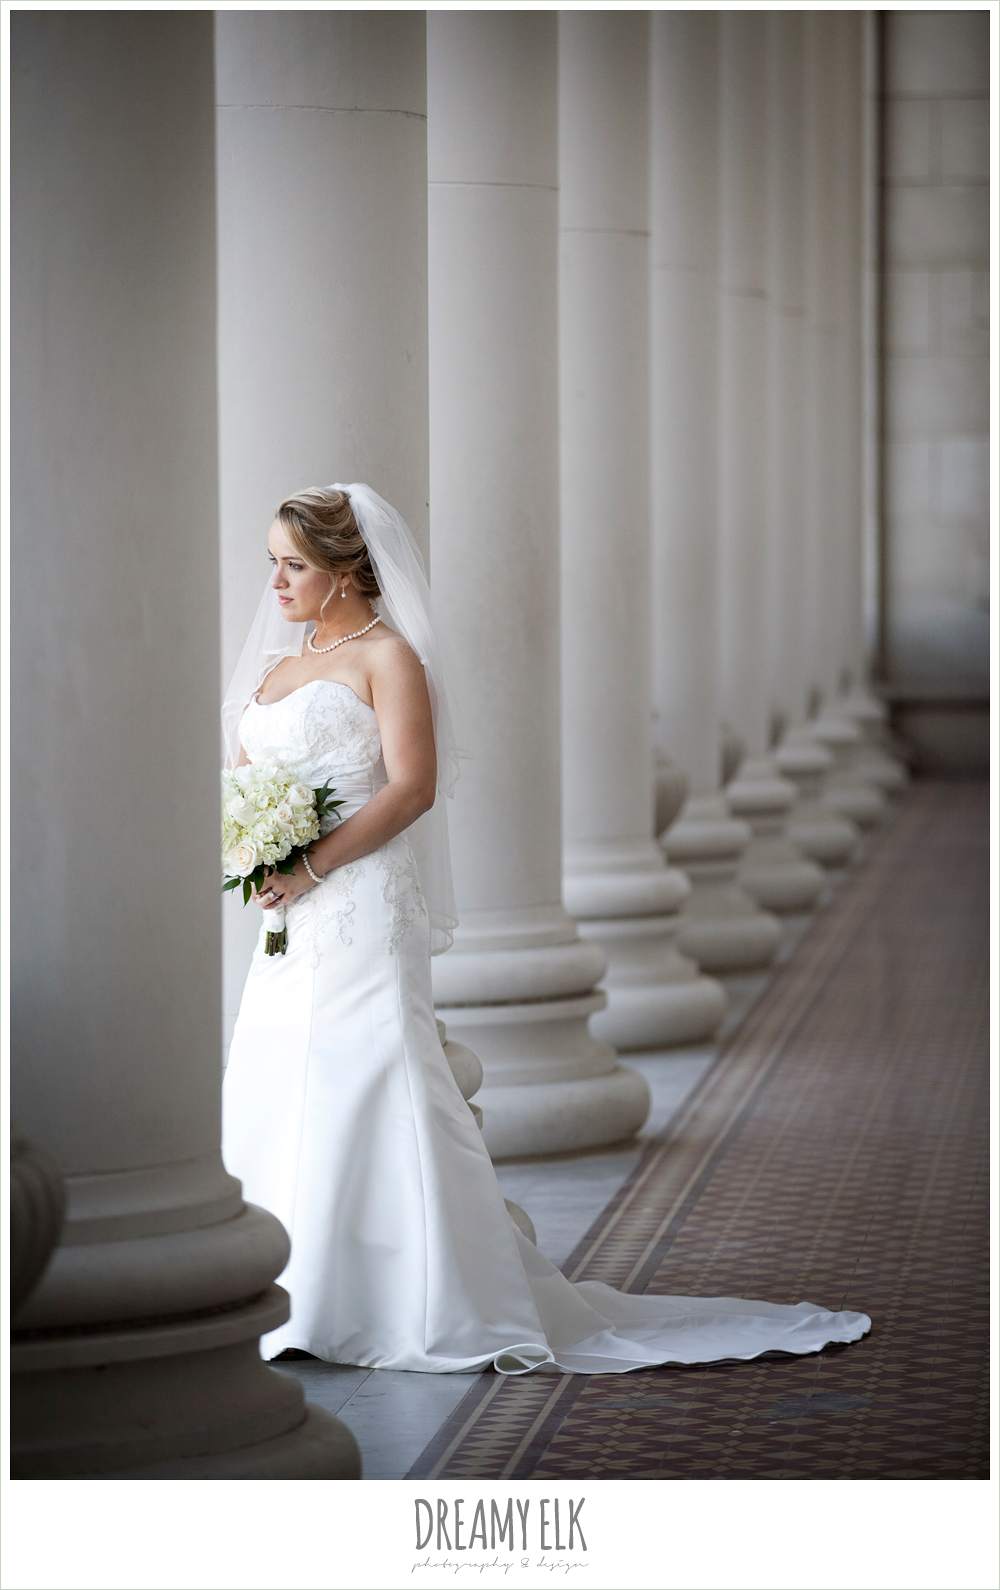 texas a&m campus, administrative building, trumpet satin wedding dress, white wedding bouquet {dreamy elk photography and design}